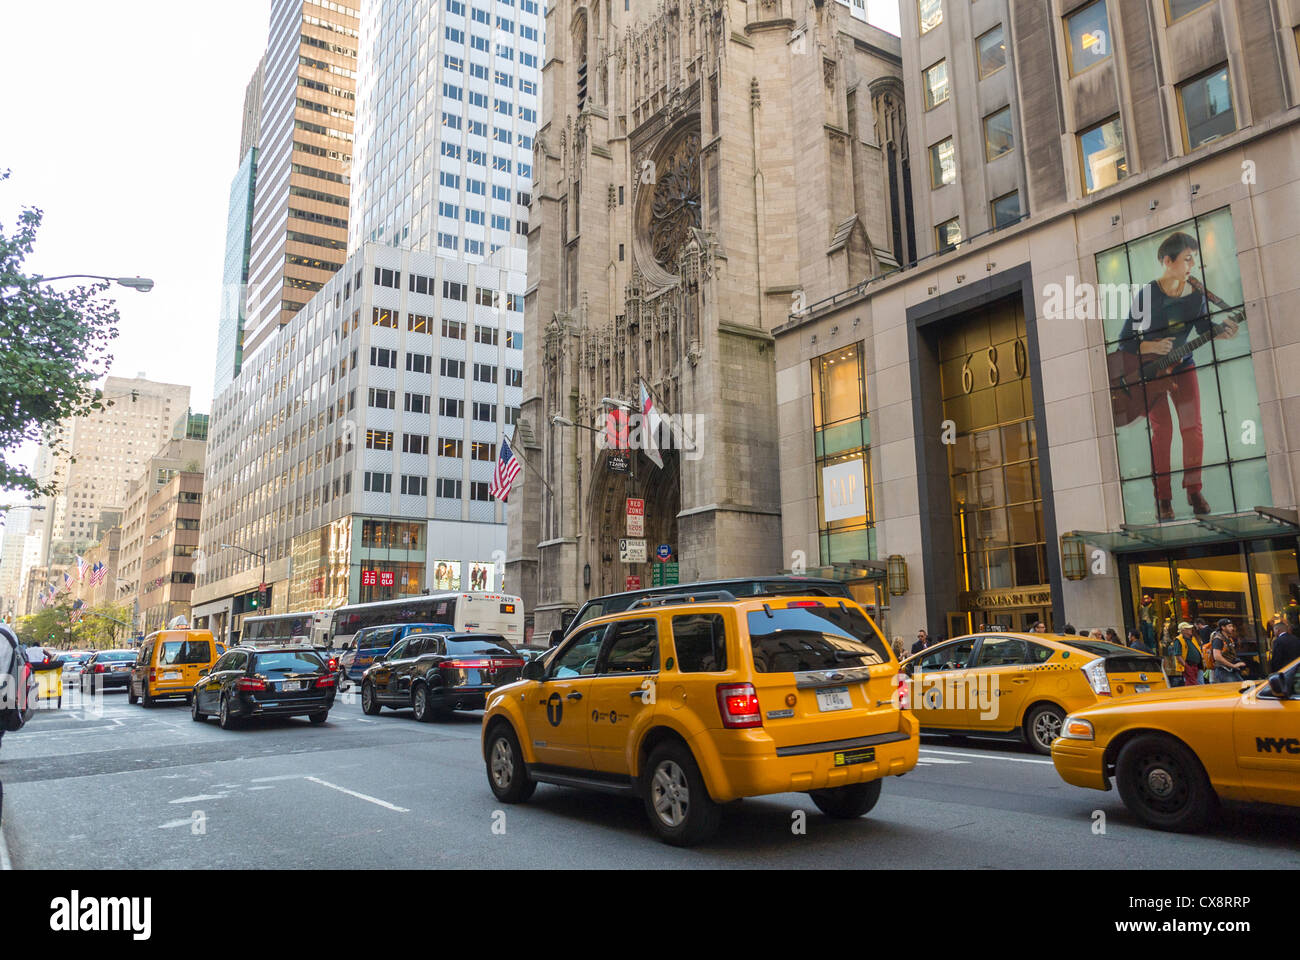 New York, NY, USA, Yellow Taxi Cabs, Street Scenes, Luxury Shops on Fifth Avenue, Manhattan , - Stock Image